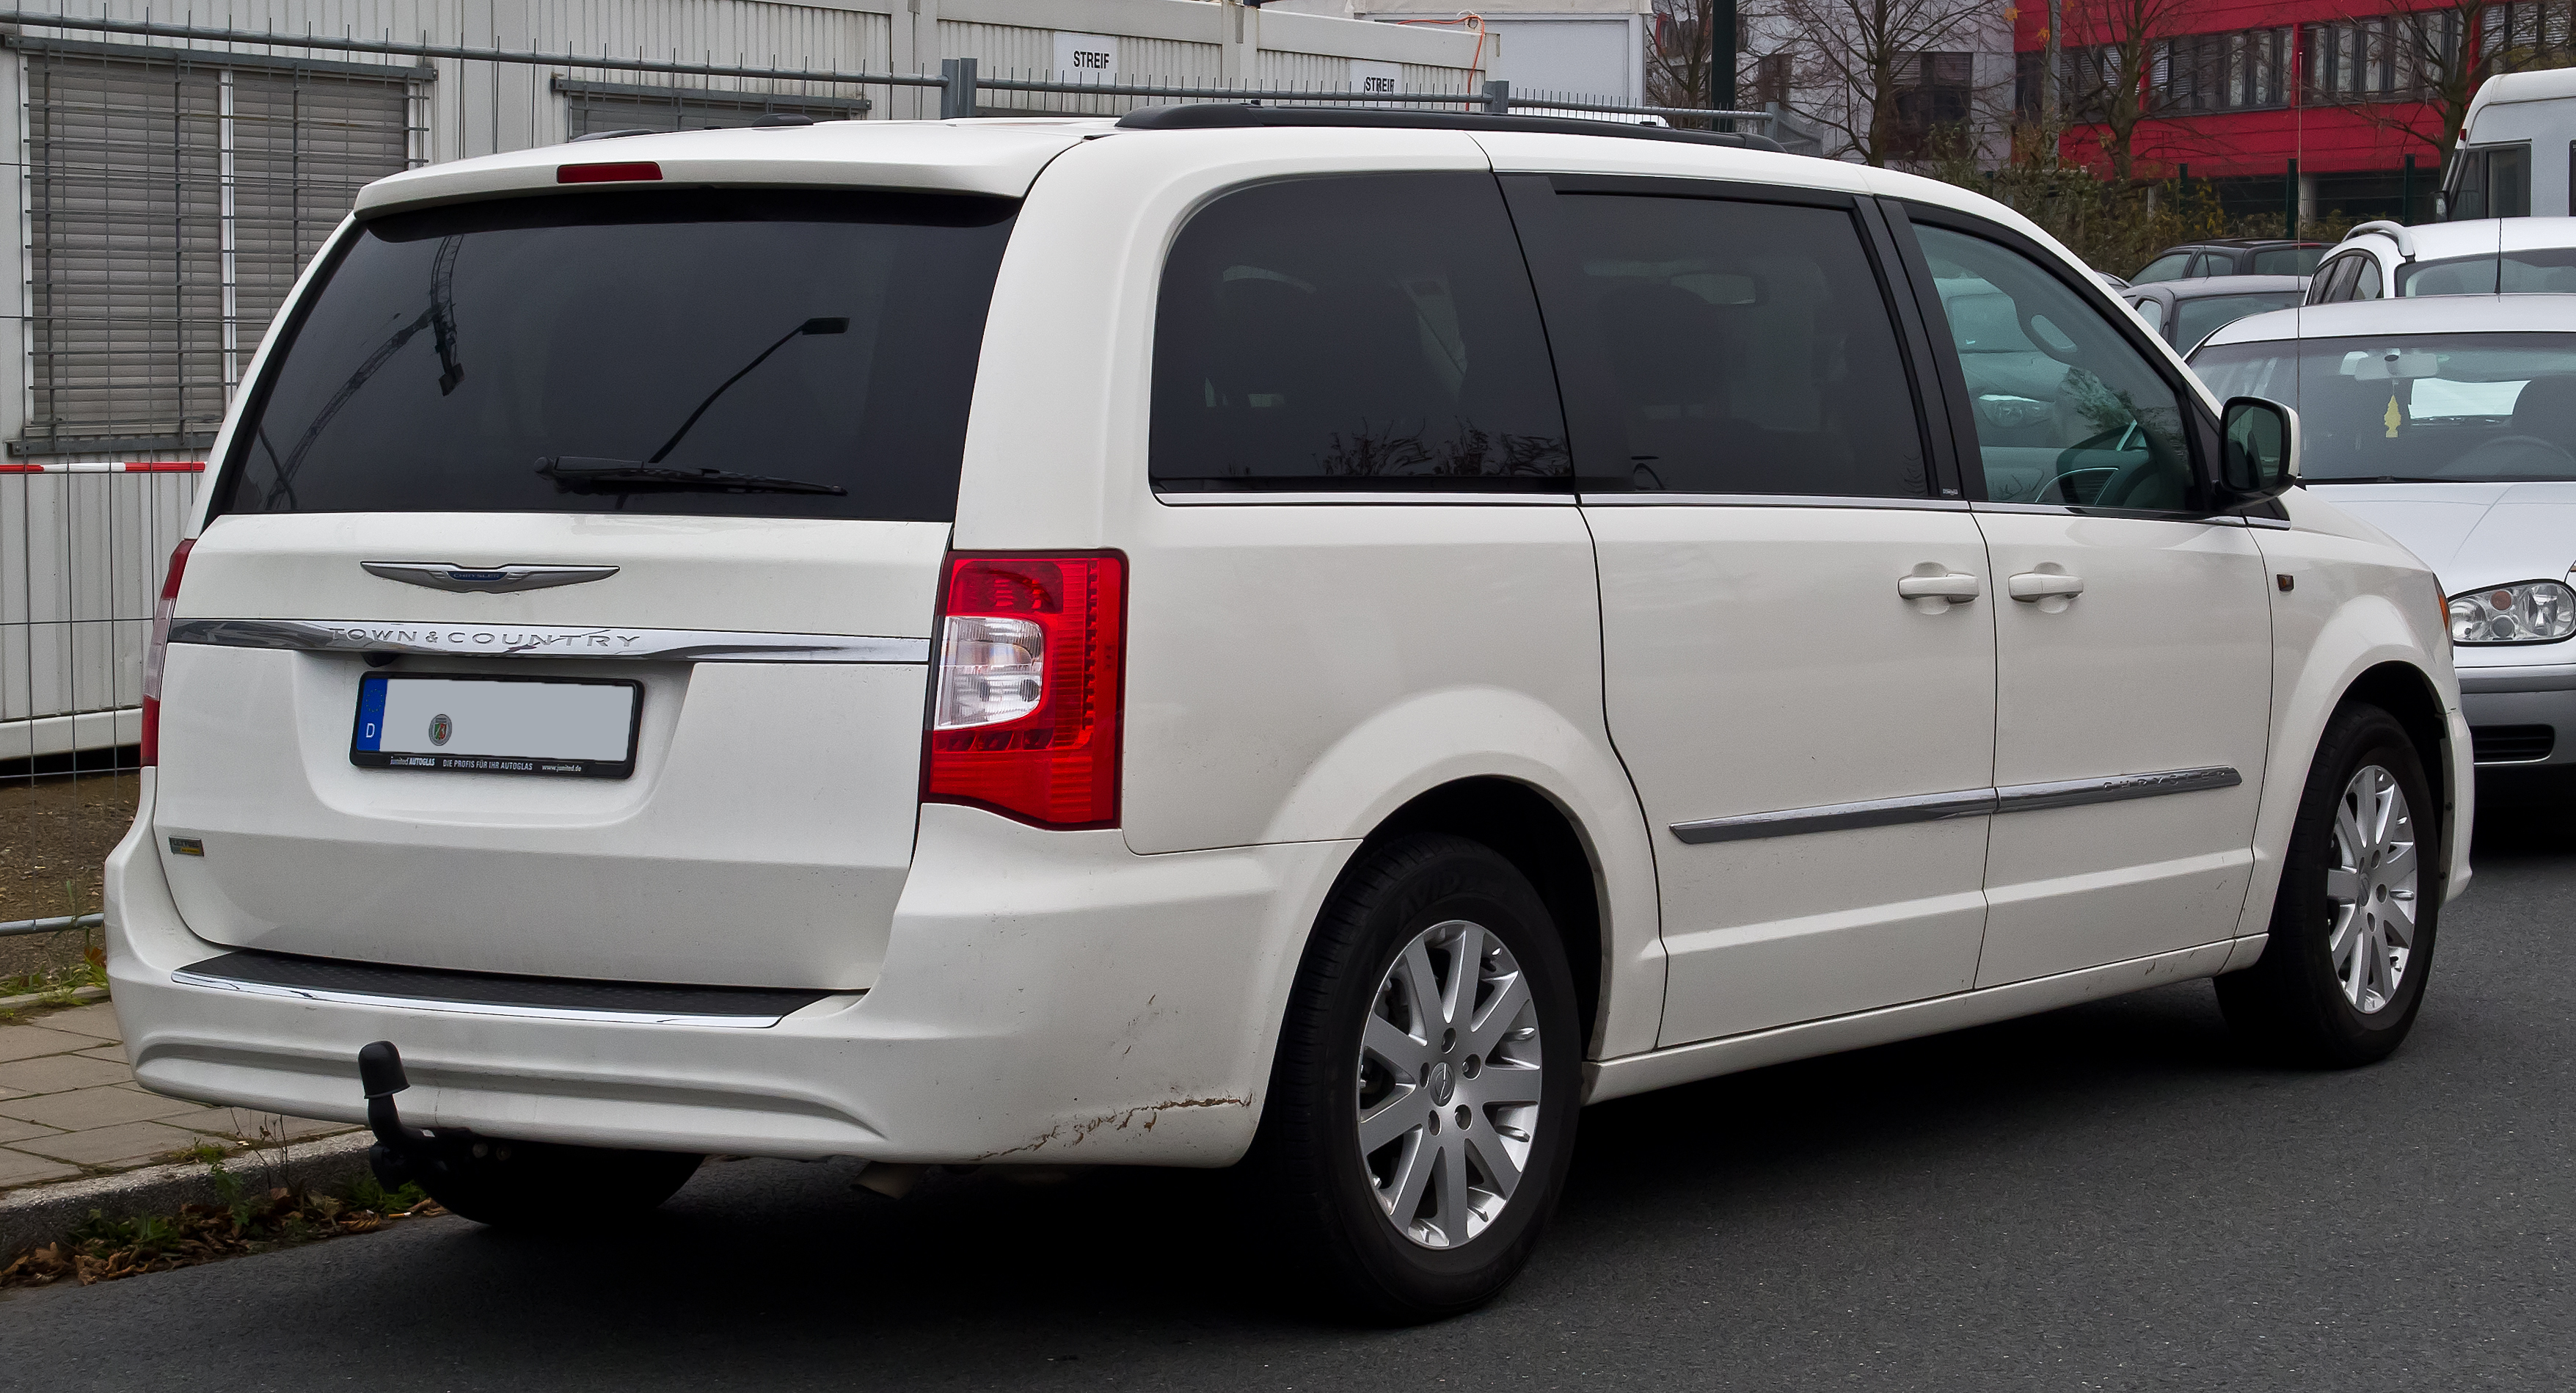 Chrysler_Town_%26_Country_3.6_V6_Touring_%28V%2C_Facelift%29_%E2%80%93_Heckansicht%2C_30._November_2014%2C_D%C3%BCsseldorf Great Description About 2012 Chrysler town and Country Recalls with Amazing Photos Cars Review